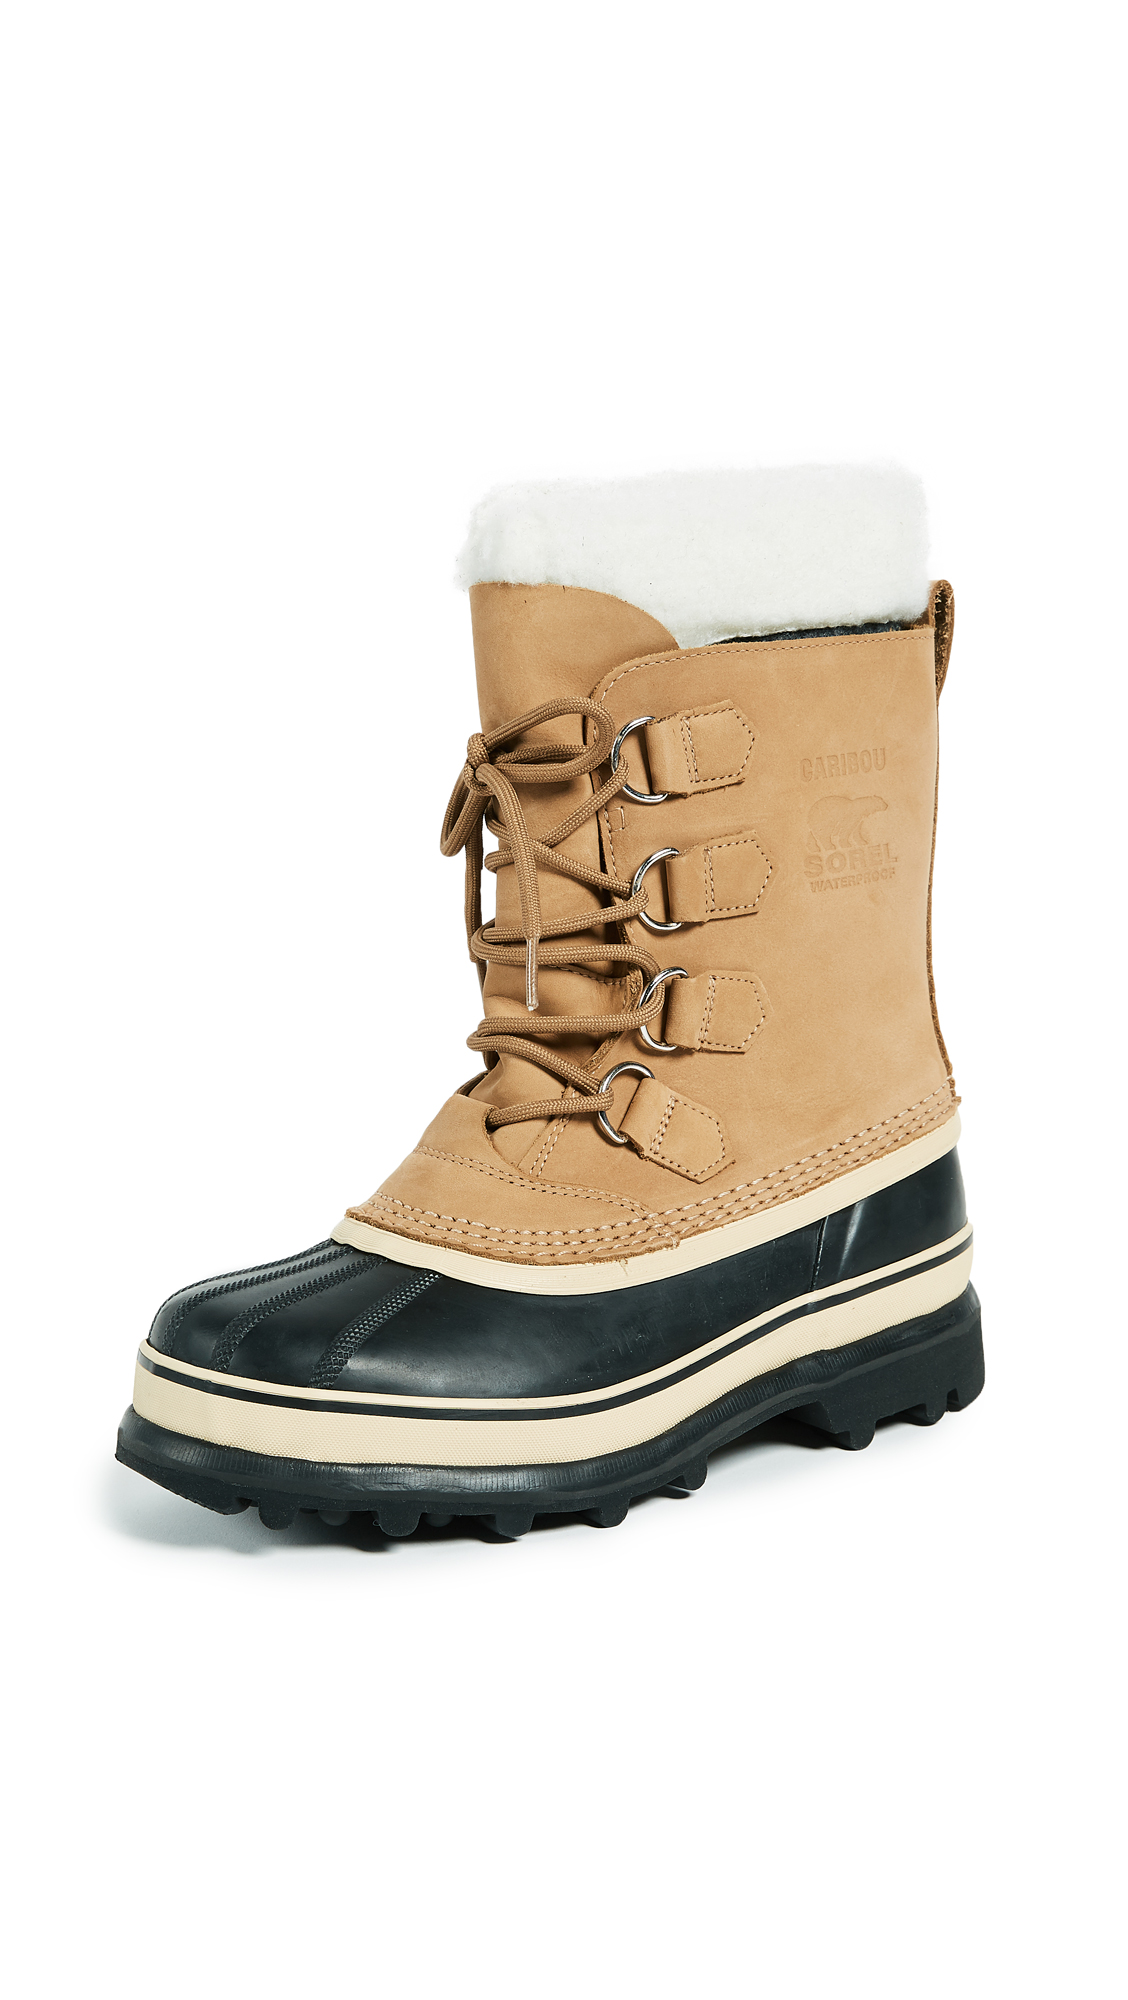 Buy Sorel Caribou Boots online, shop Sorel